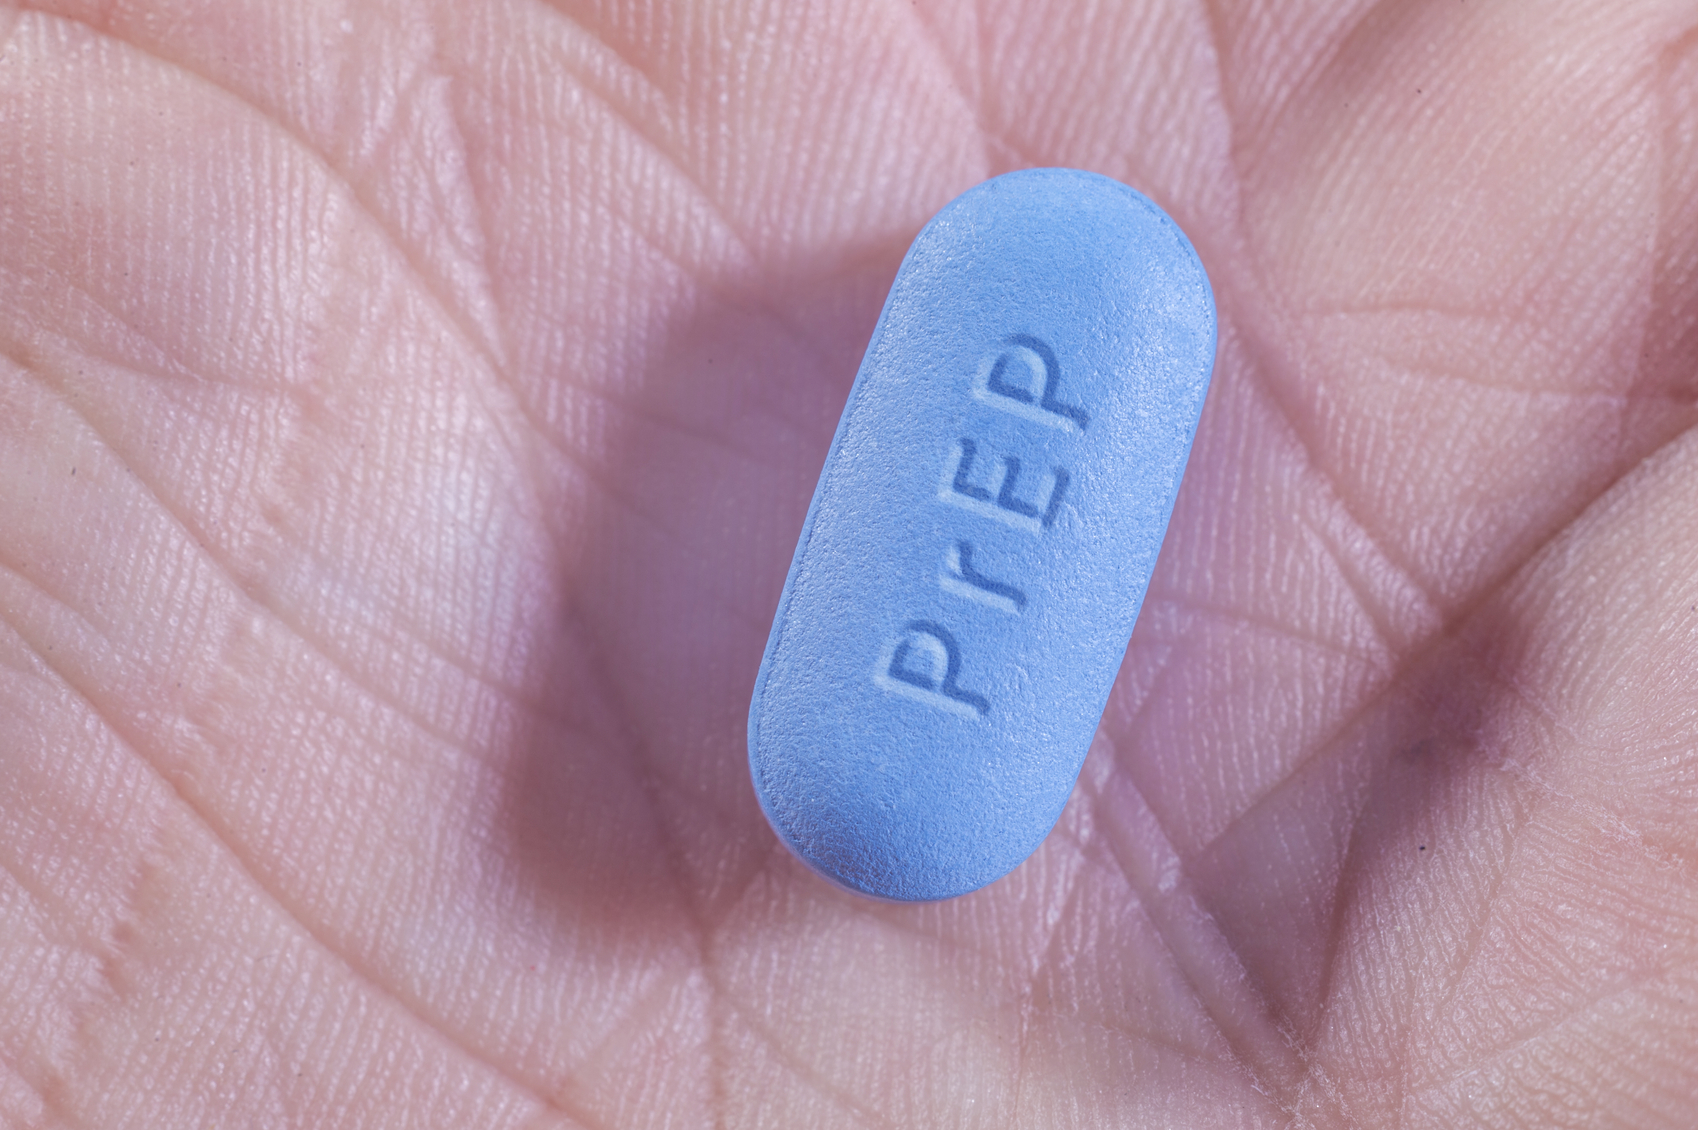 Concern raised over a possible link between PrEP use and increased risk of STI acquisition